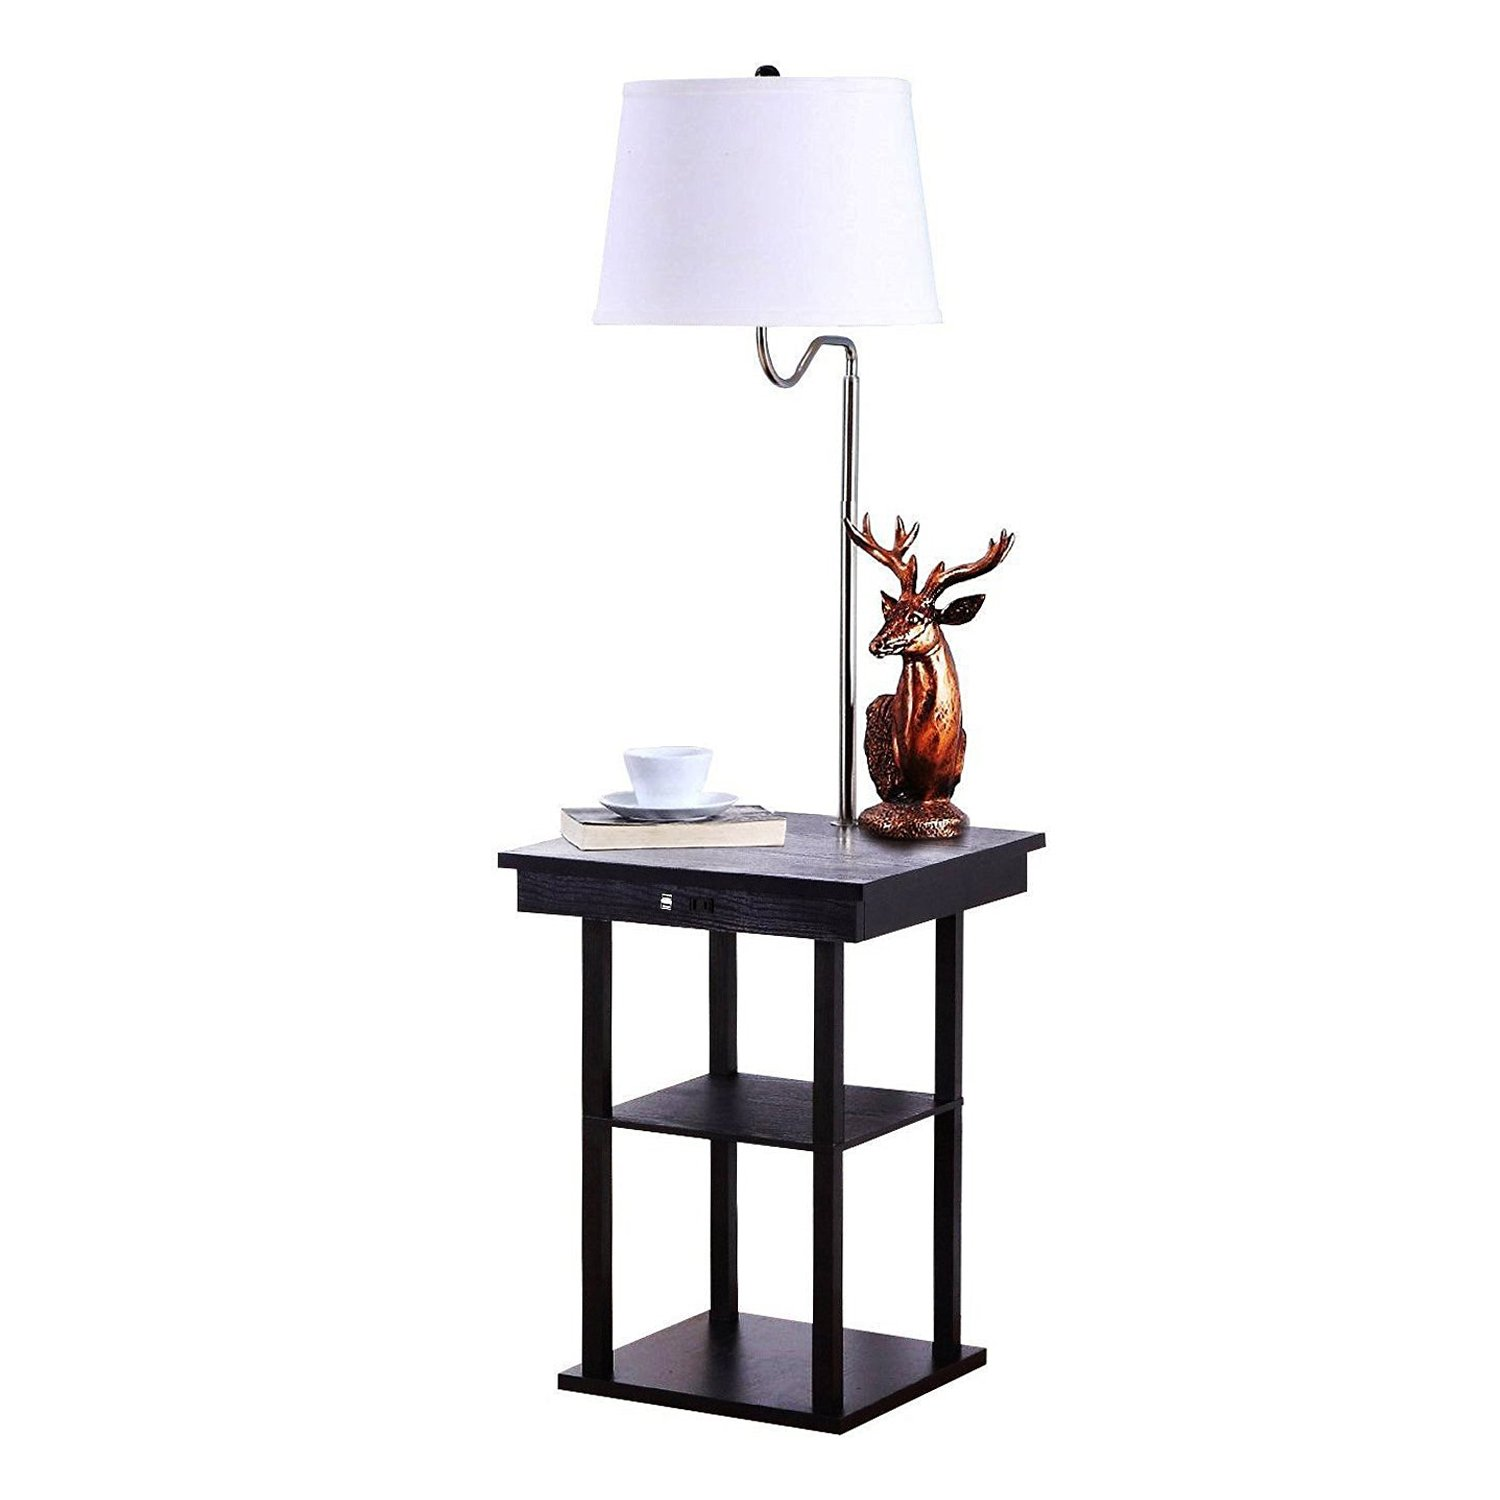 Delightful Brightech Madison LED Floor Lamp Swing Arm Lamp W/ Shade Built In End Table  Shelf, Includes 2 USB Ports 1 US Electric Outlet U2013 Bedside Table Lamp For  ...